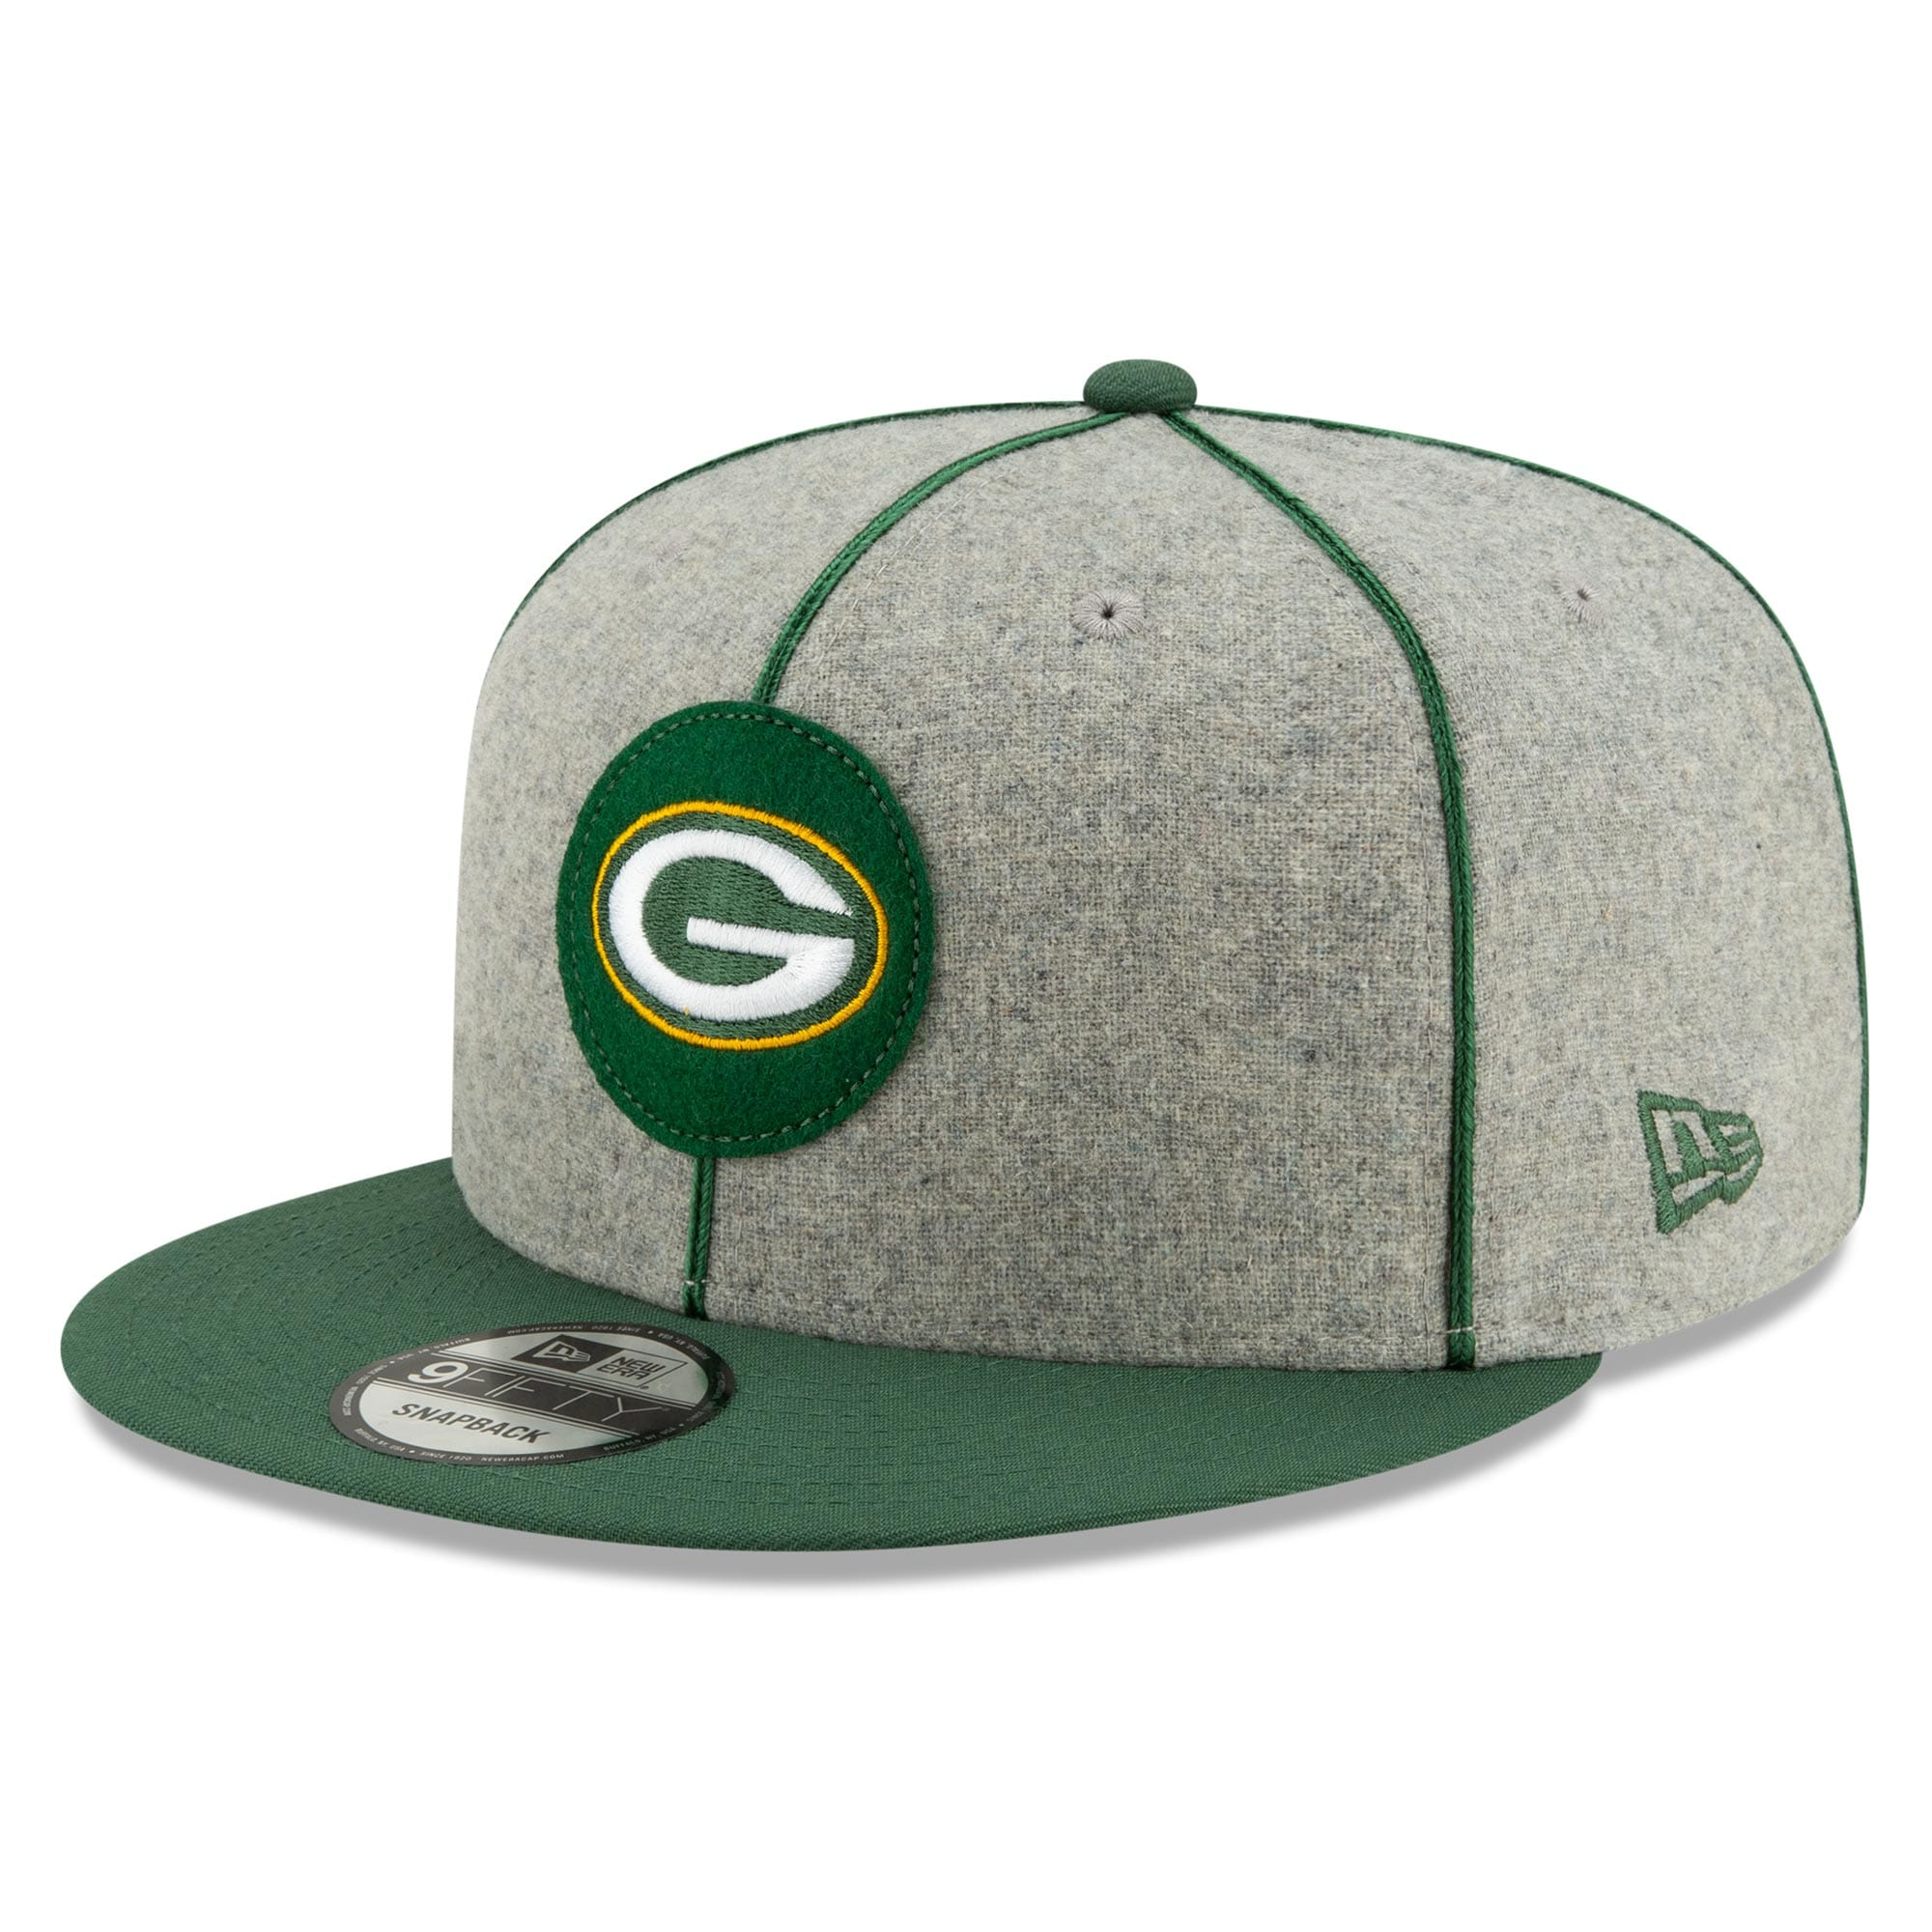 Green Bay Packers New Era 2019 Official Home Sidel official Anders Bjork jersey